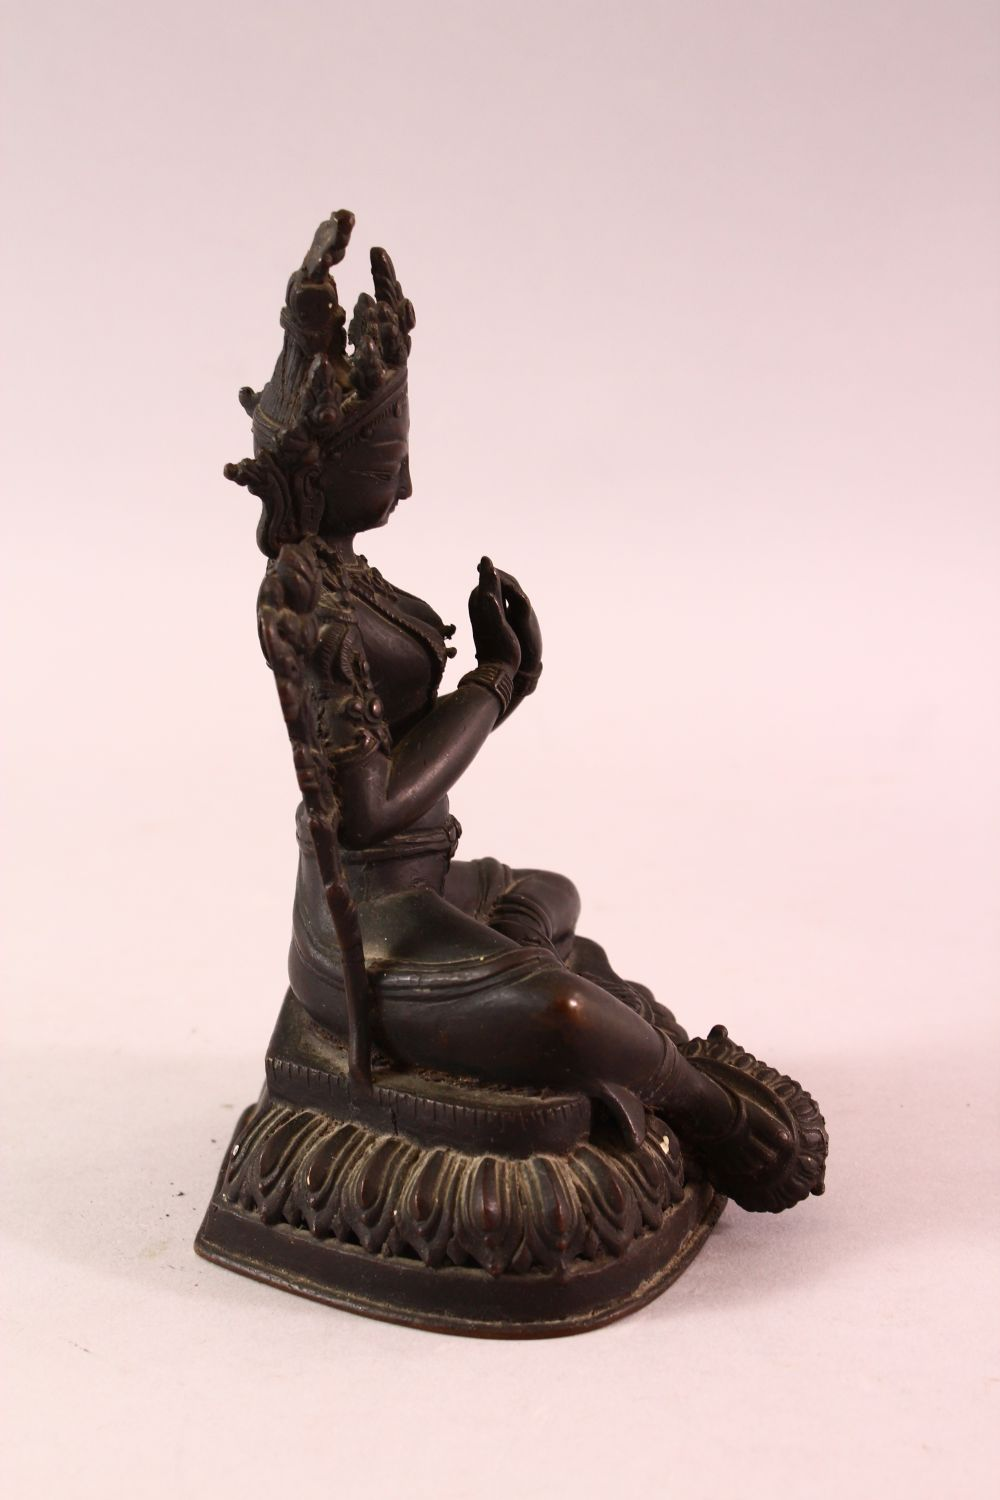 A 19TH CENTURY INDIAN BRONZE FIGURE OF SHIVA / DEITY, in a seated pose with hands together, upon - Image 2 of 5